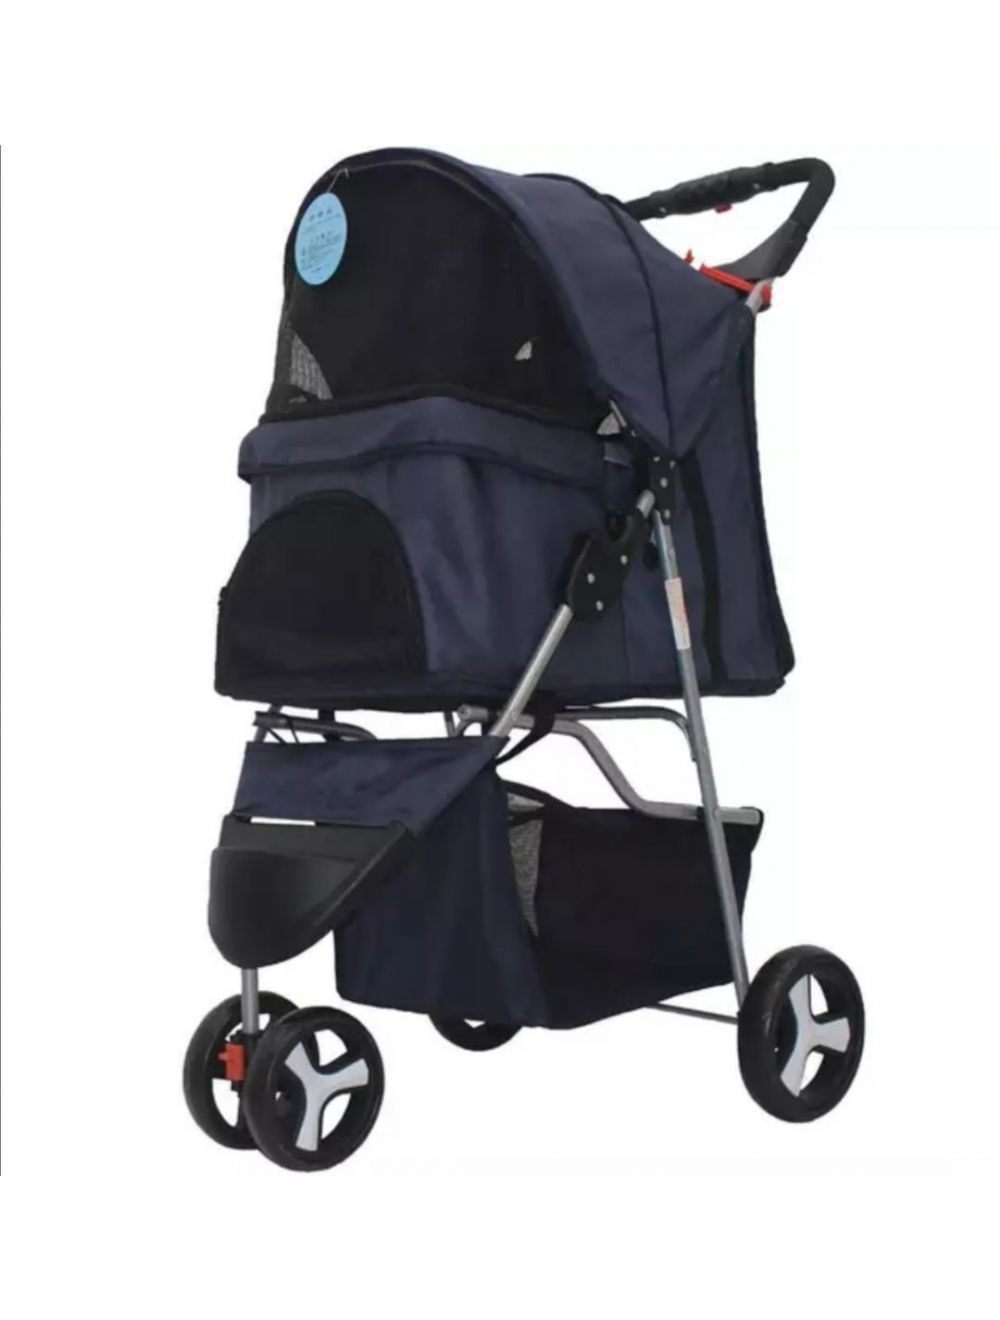 Coche Pet Stroller Mediano Color Negro